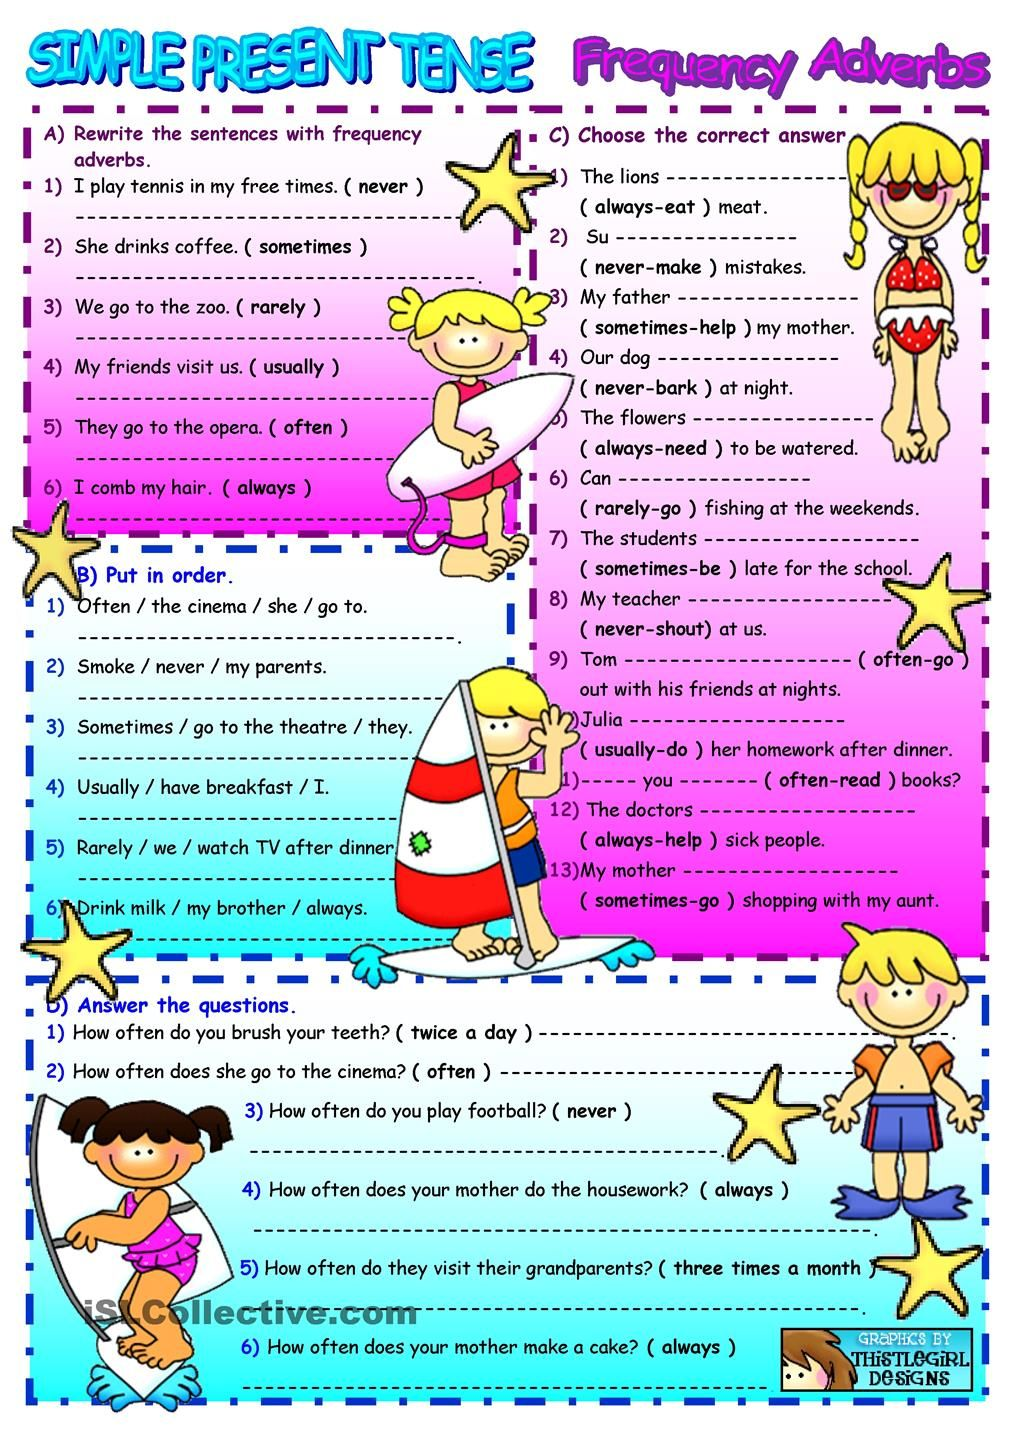 Frequency Adverbs/Simple Present Tense | ADVERBS | Pinterest ...